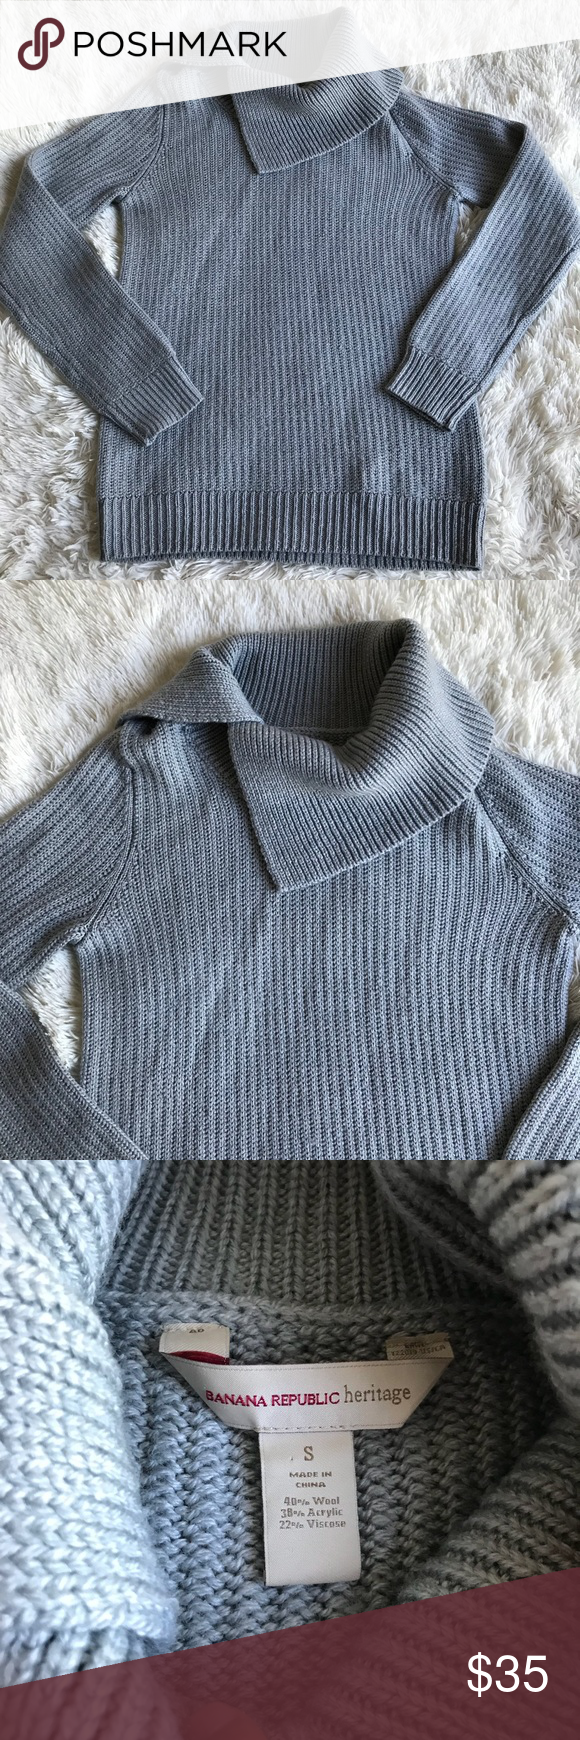 Banana Republic Heritage Wool Cowl Neck Sweater | Banana republic ...